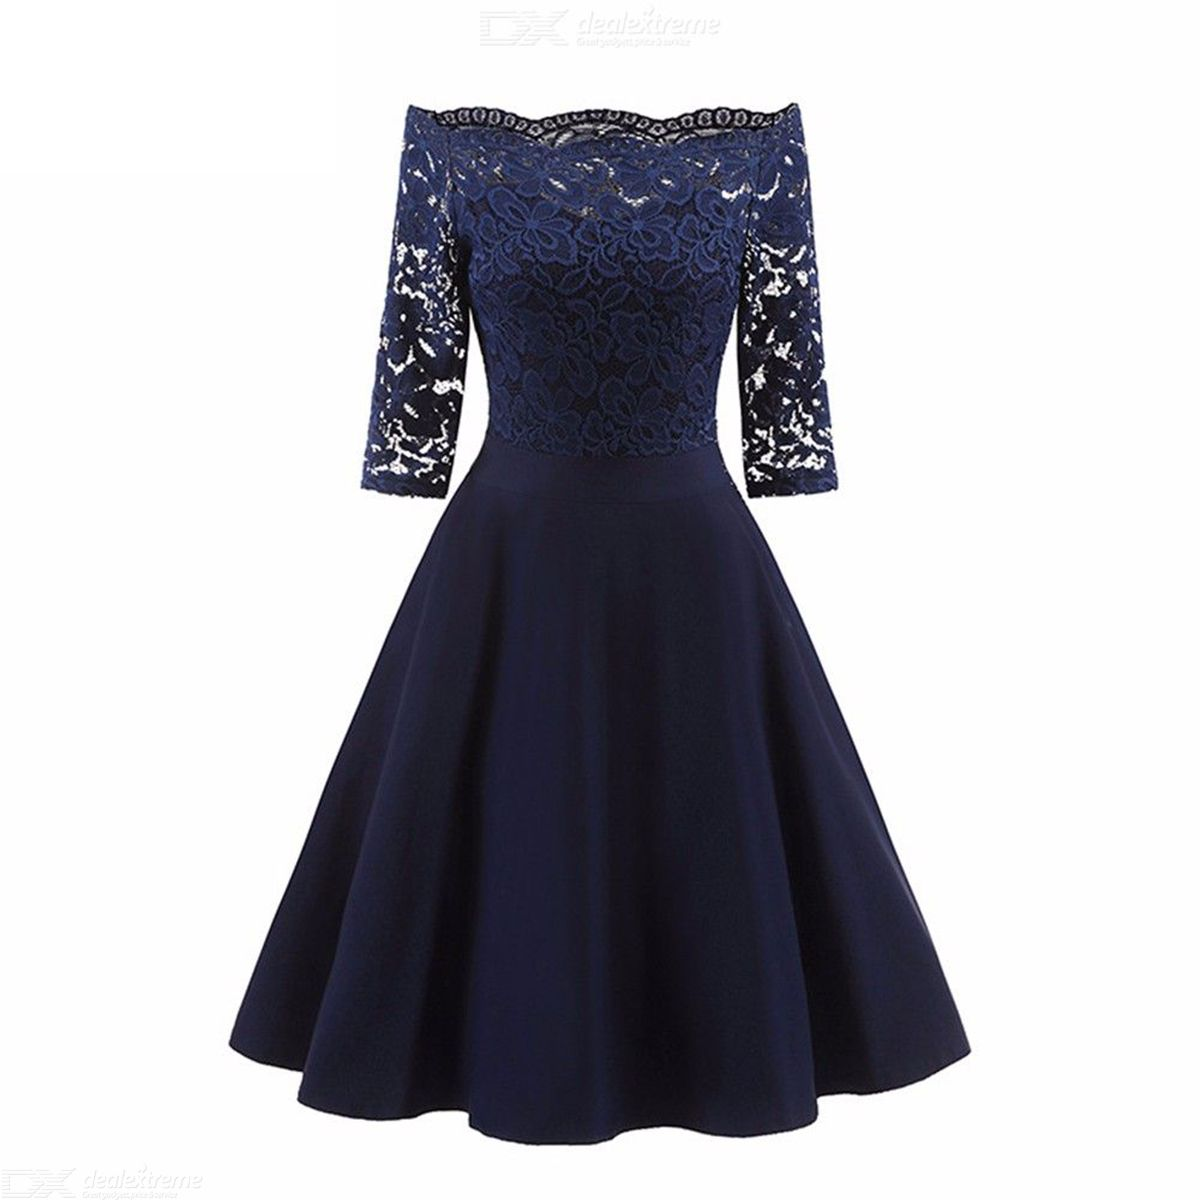 Womens Slash Neck Elbow-length Sleeve Lace Dress, Vintage-style Solid Openwork Lace Dress For Women